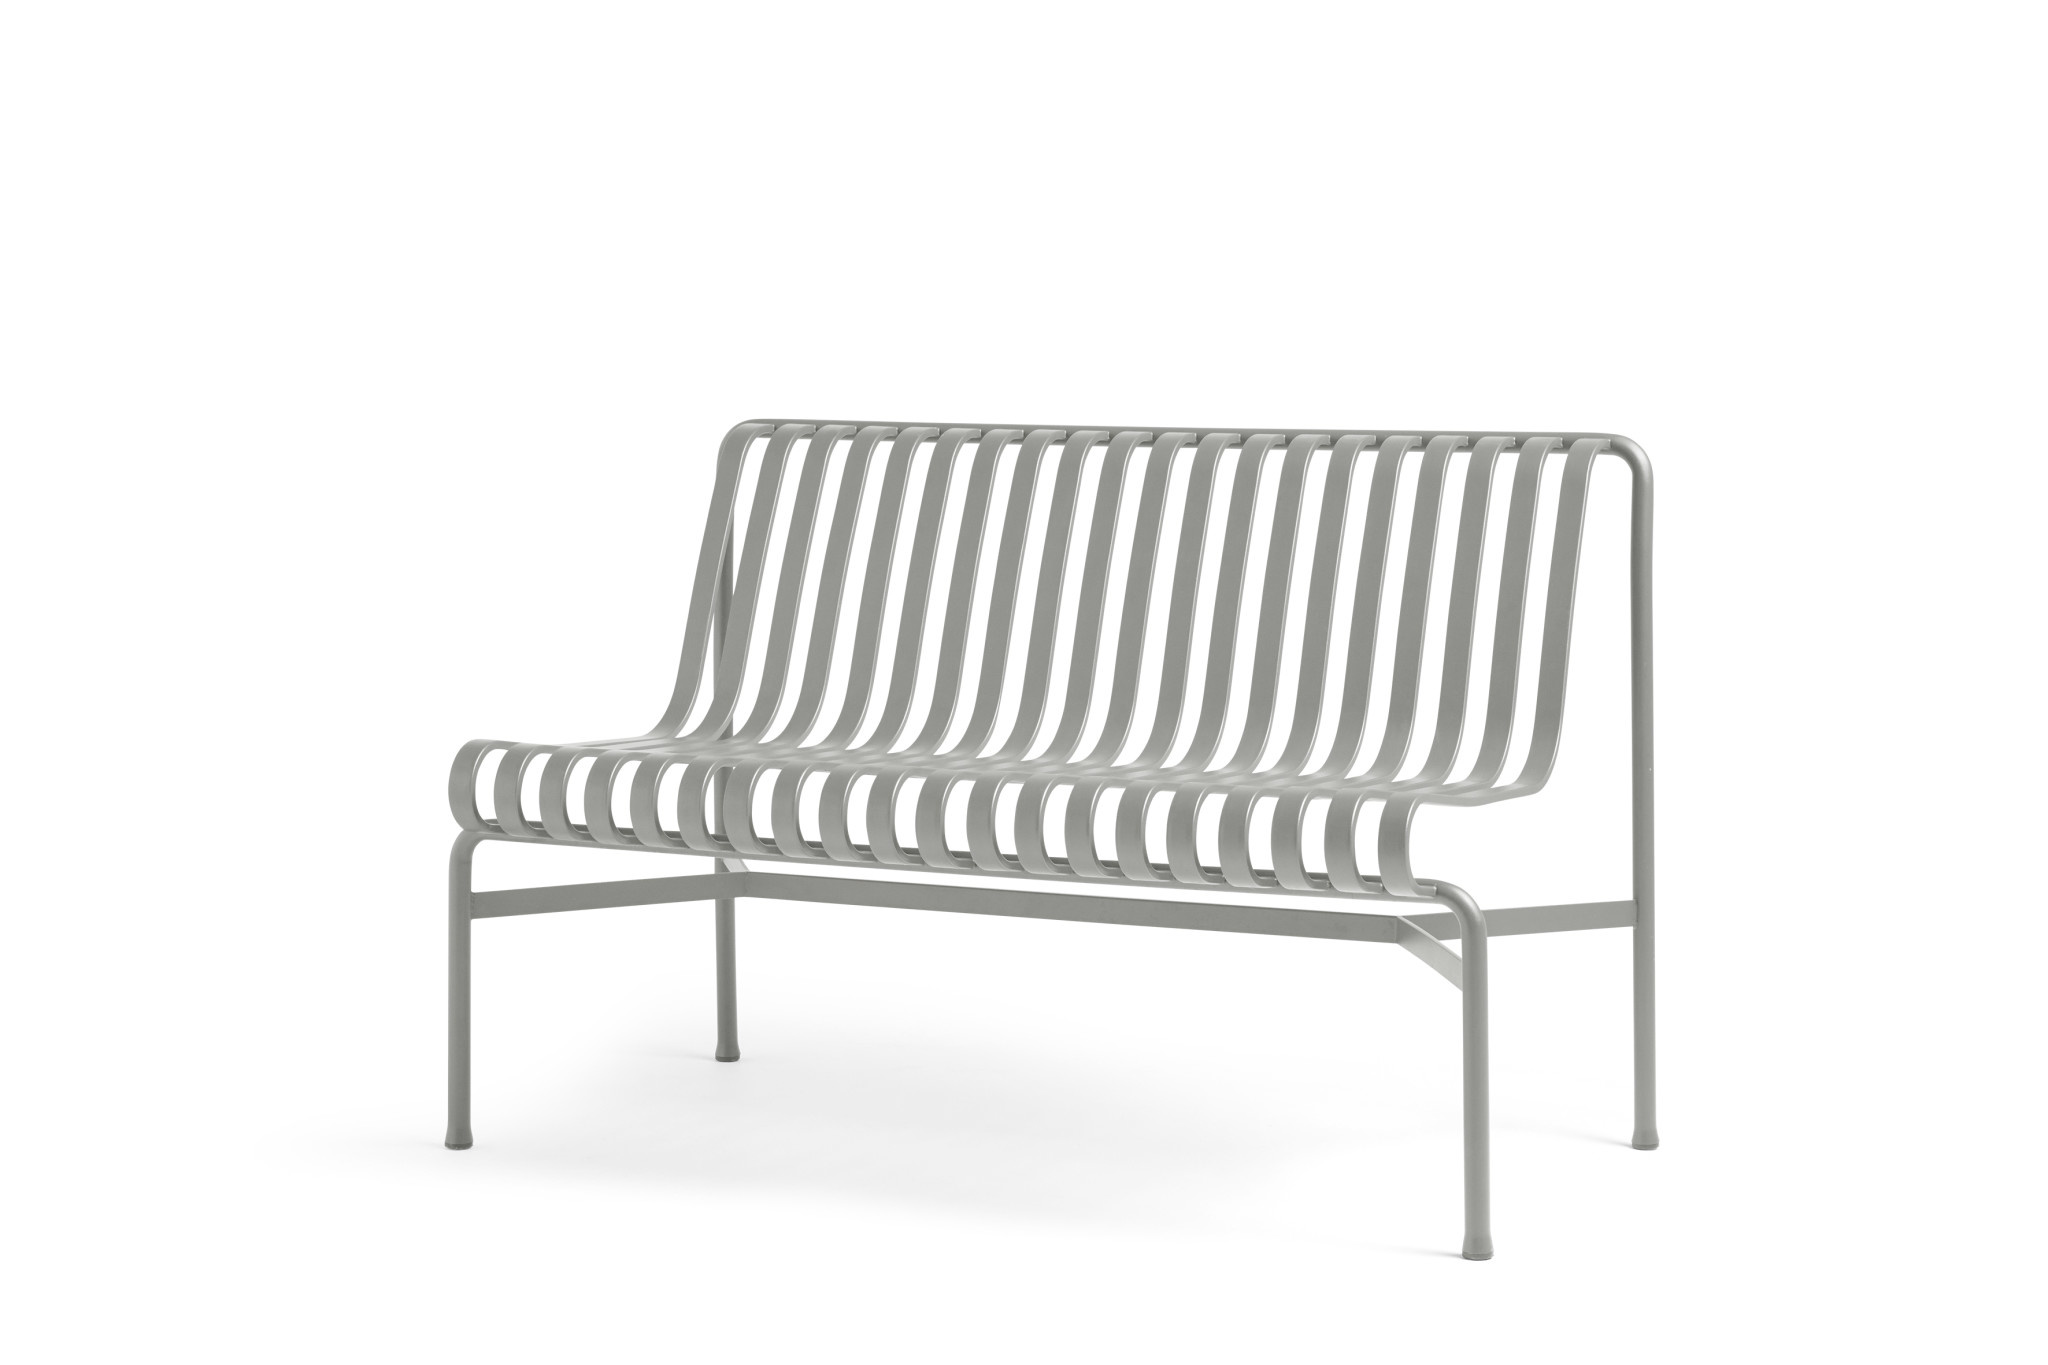 Palissade Dining bench without armrest-4